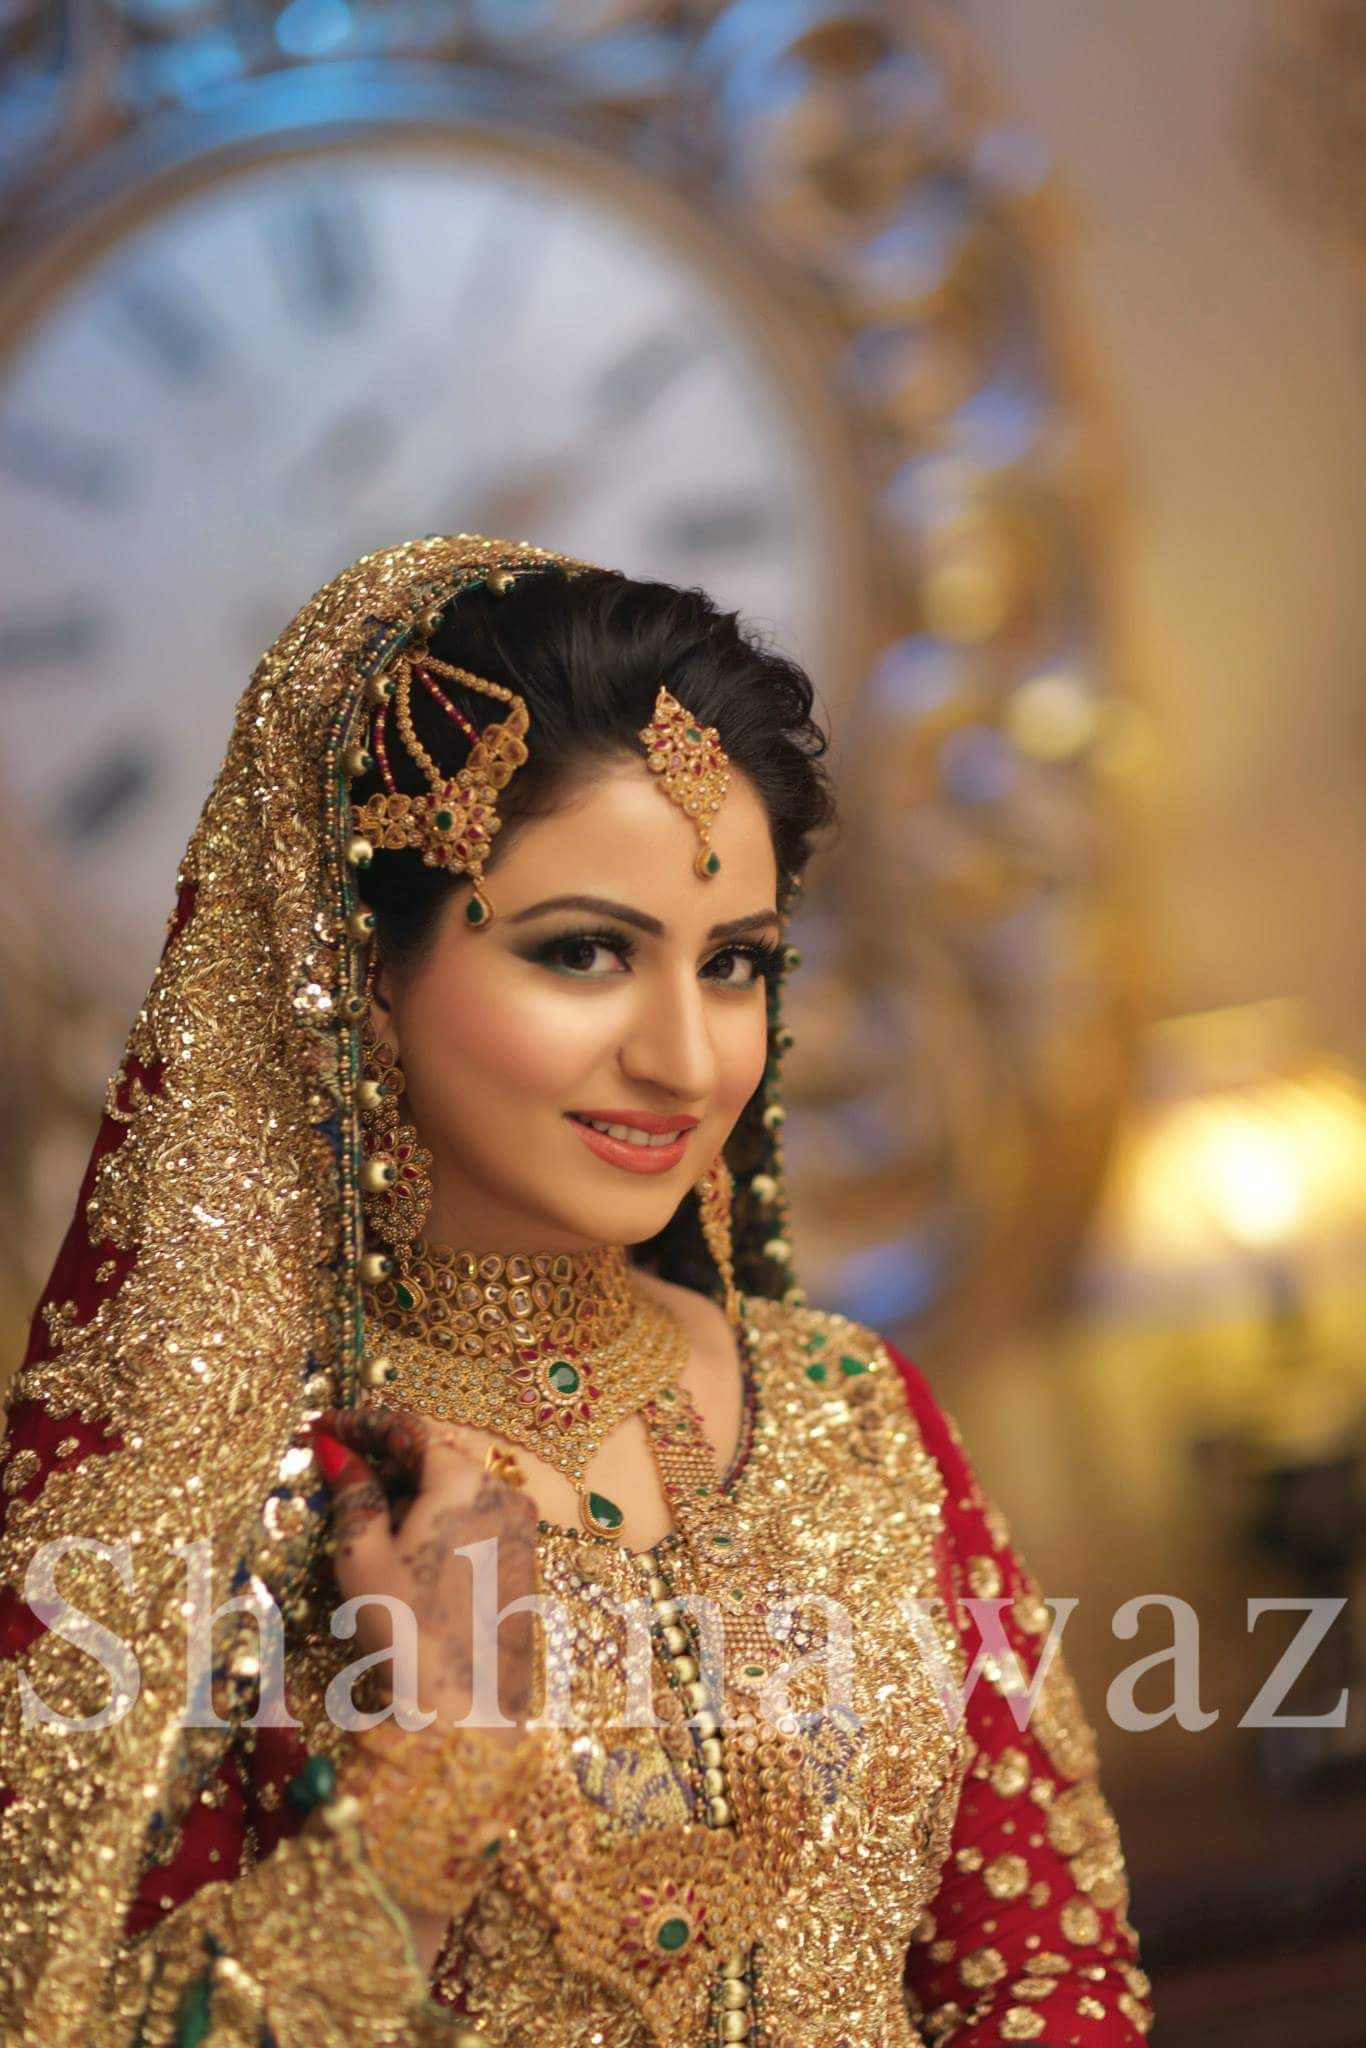 f0d51fb9e7 Photography by shahnawaz studio | Indian weddings | Bridal outfits ...